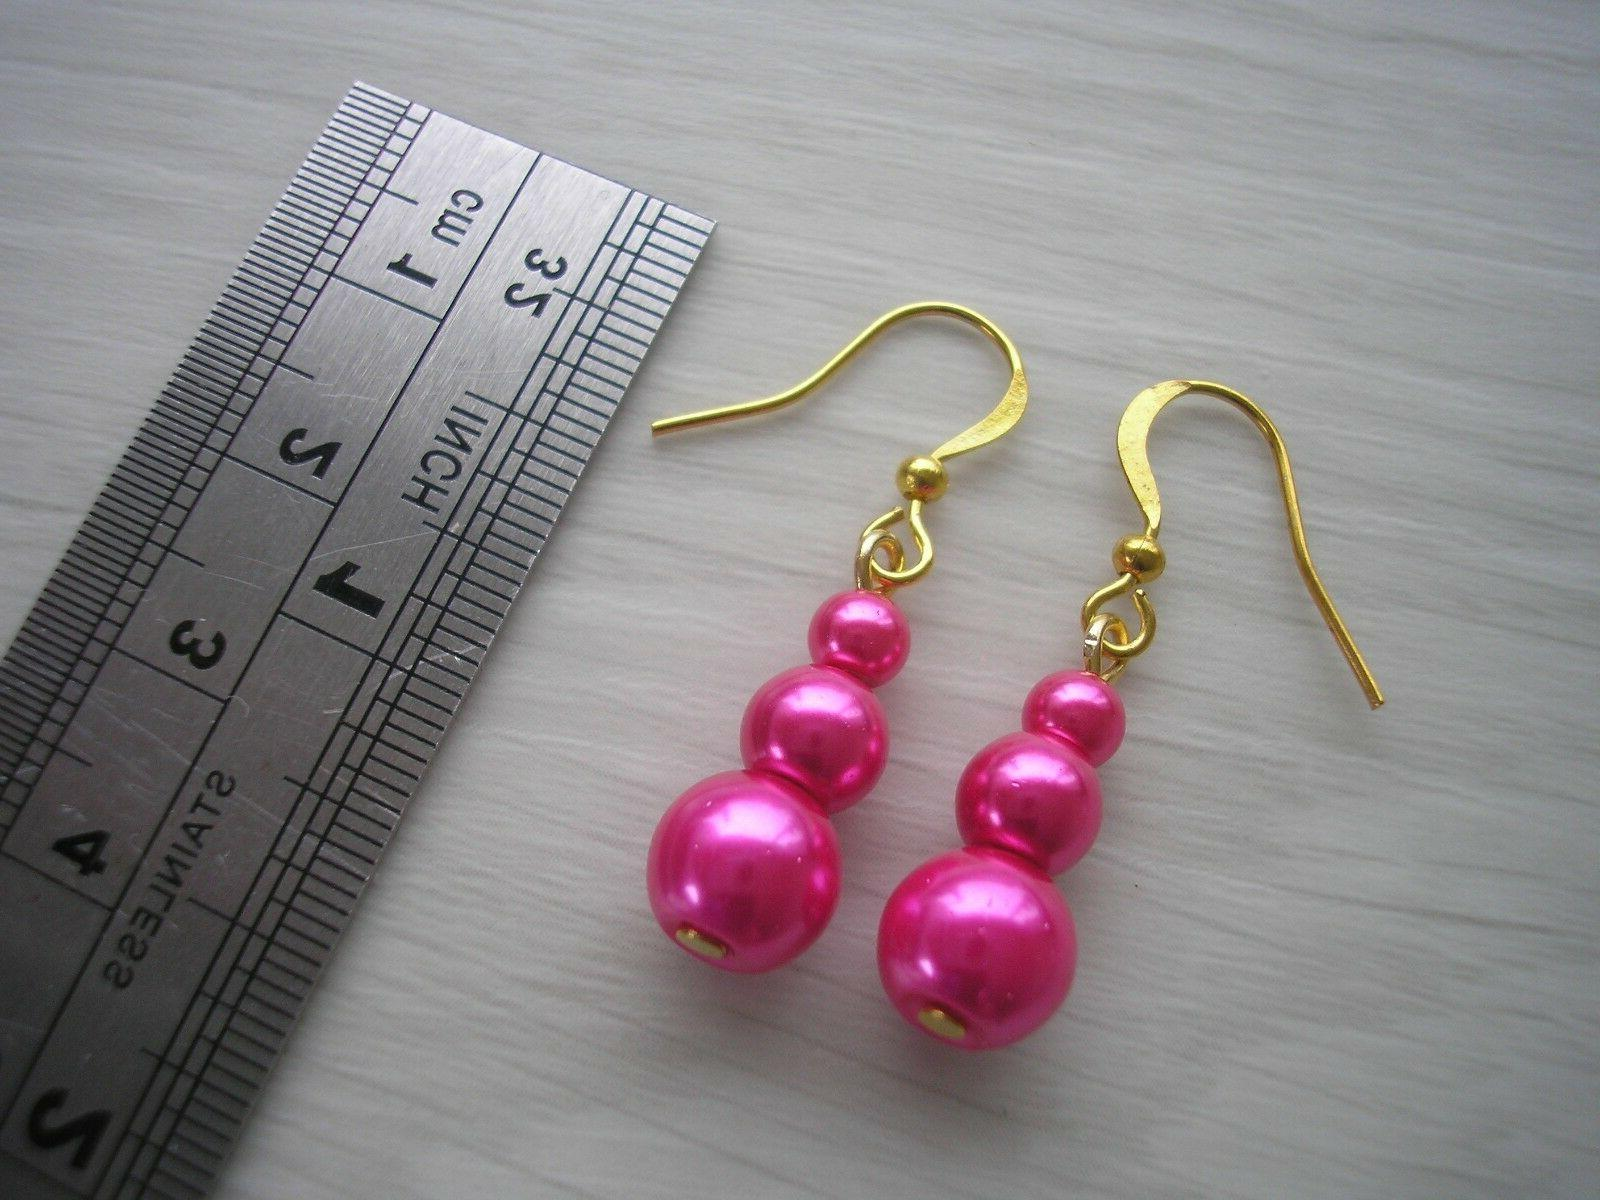 45e Pearl Earrings her Party Gift